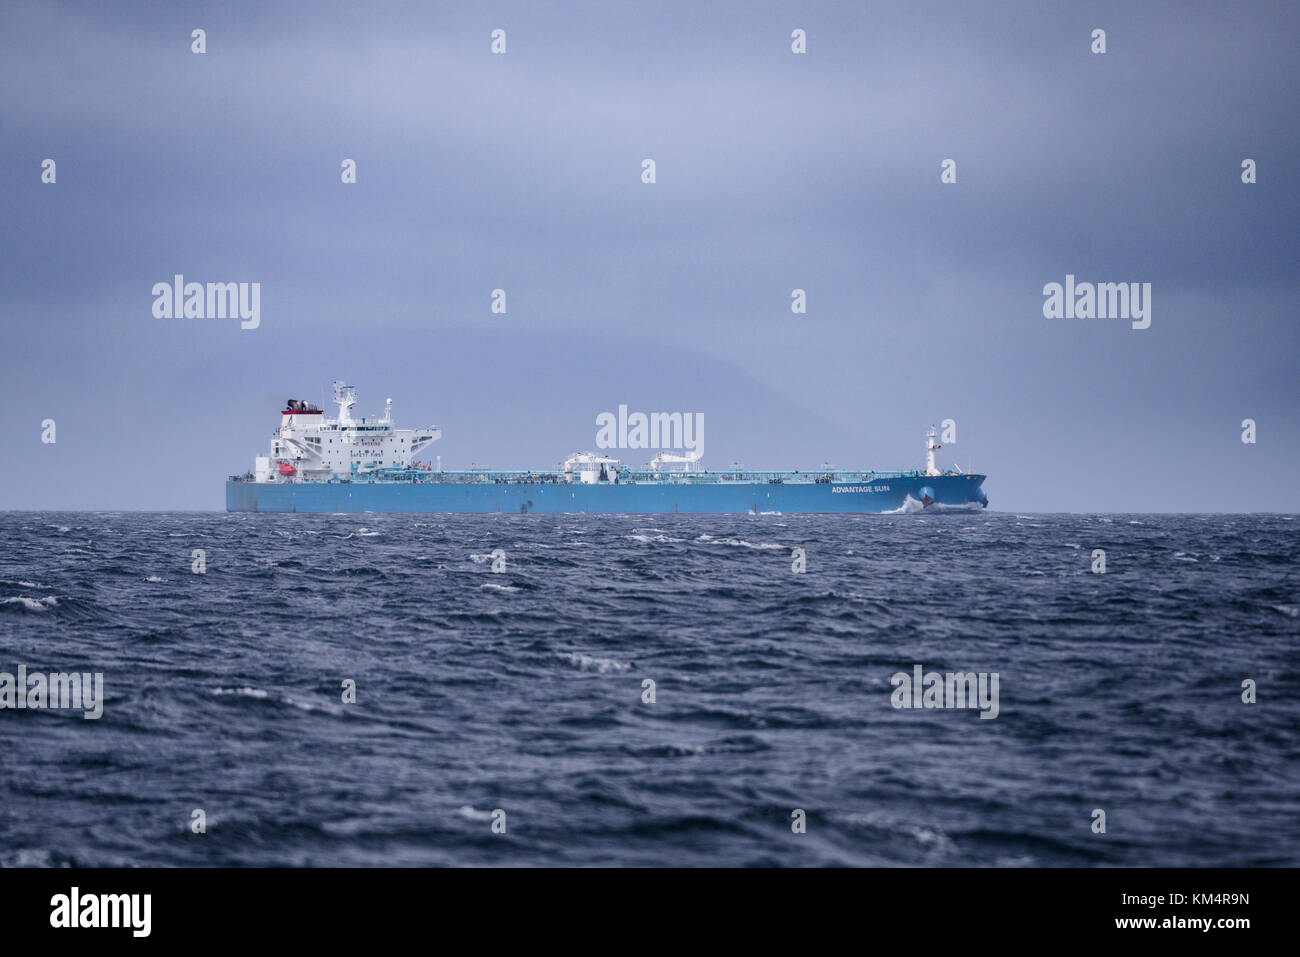 An oil tanker navigating through the Straits of Magellan in southern Chile - Stock Image